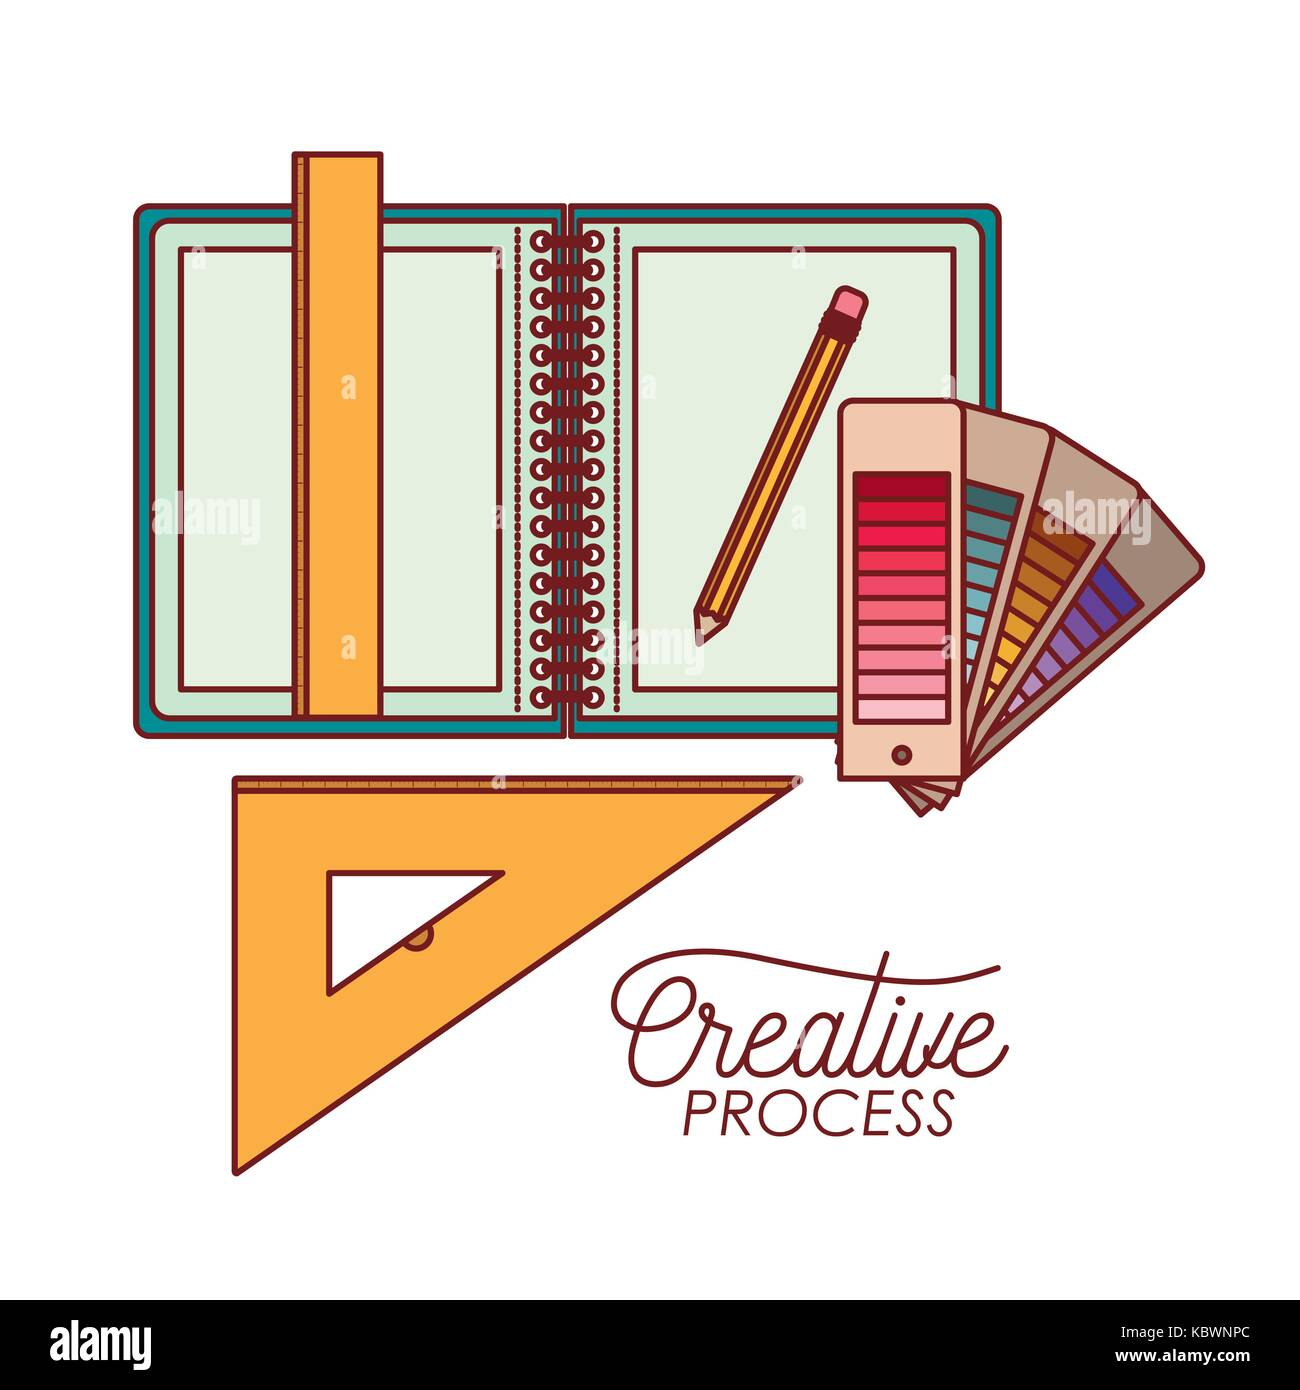 work elements graphic design creative process on white background - Stock Image